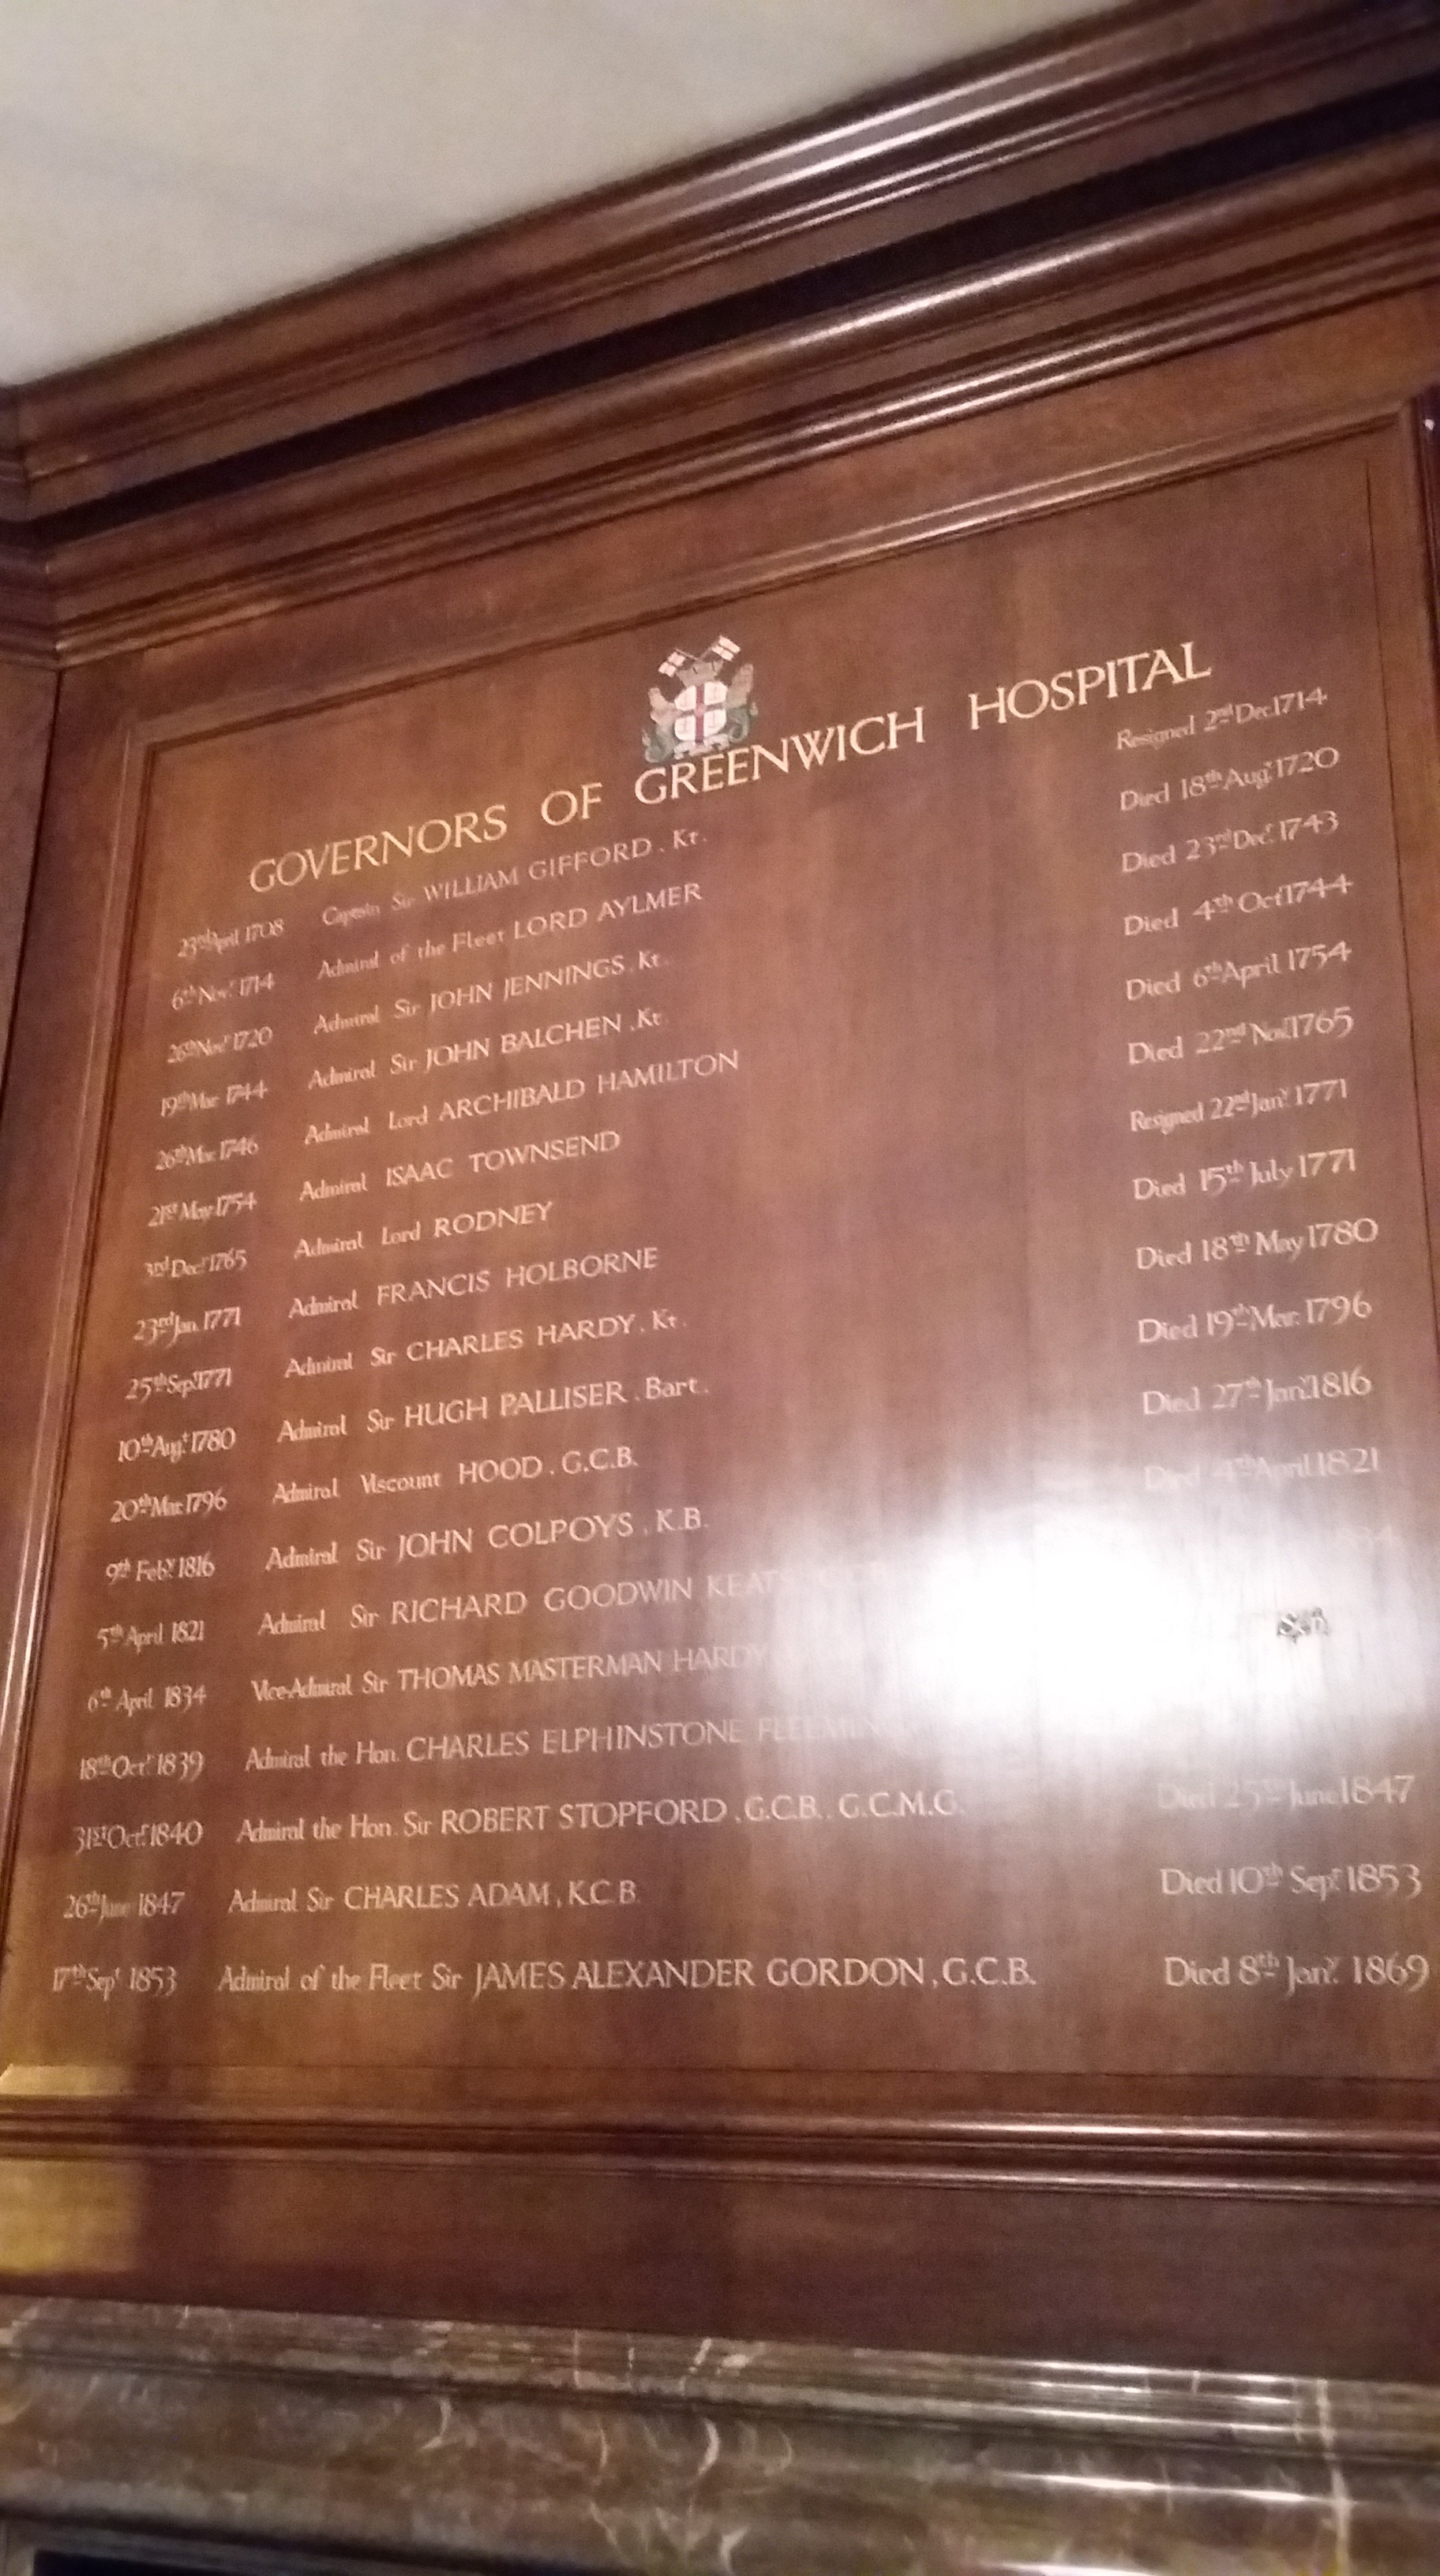 Former governors of Greenwich Hospital